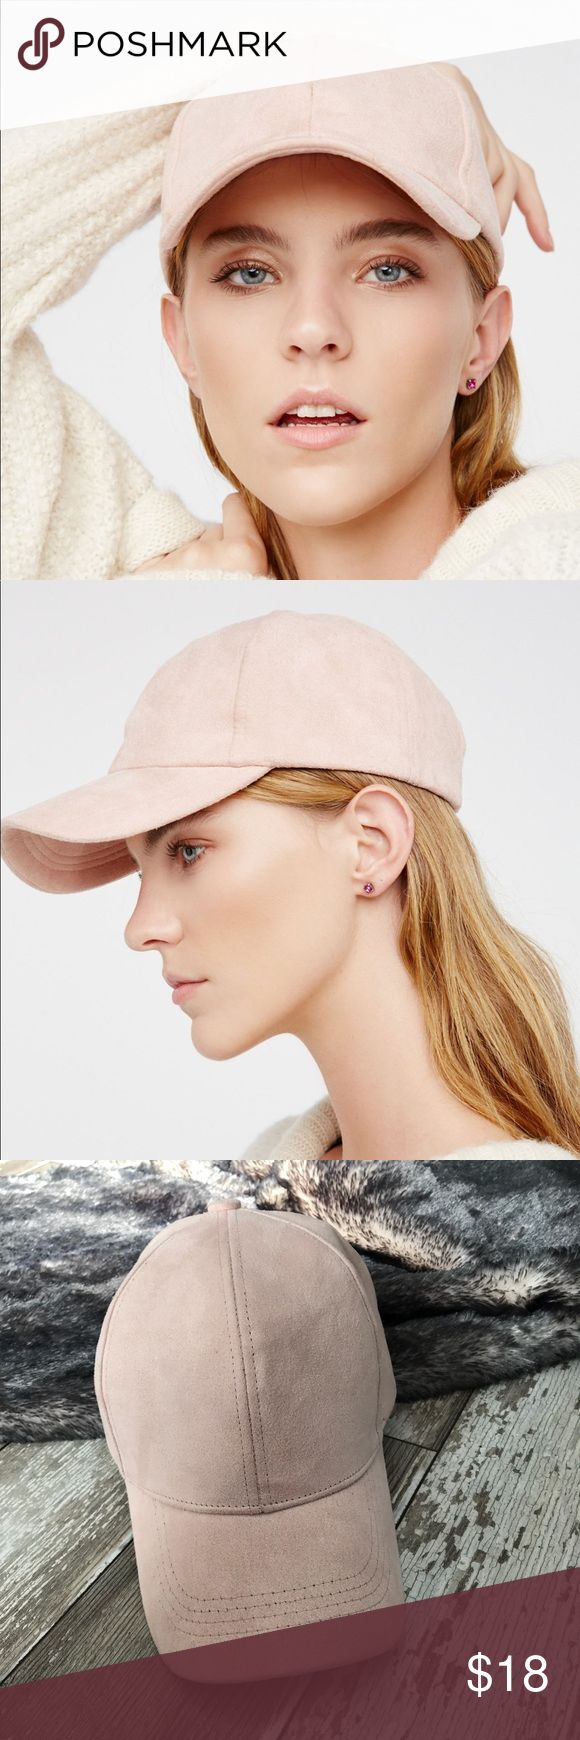 FREE PEOPLE | Light Pink Baseball Cap A Free People Baseball Cap in light pink suede. Worn twice! Free People Accessories Hats